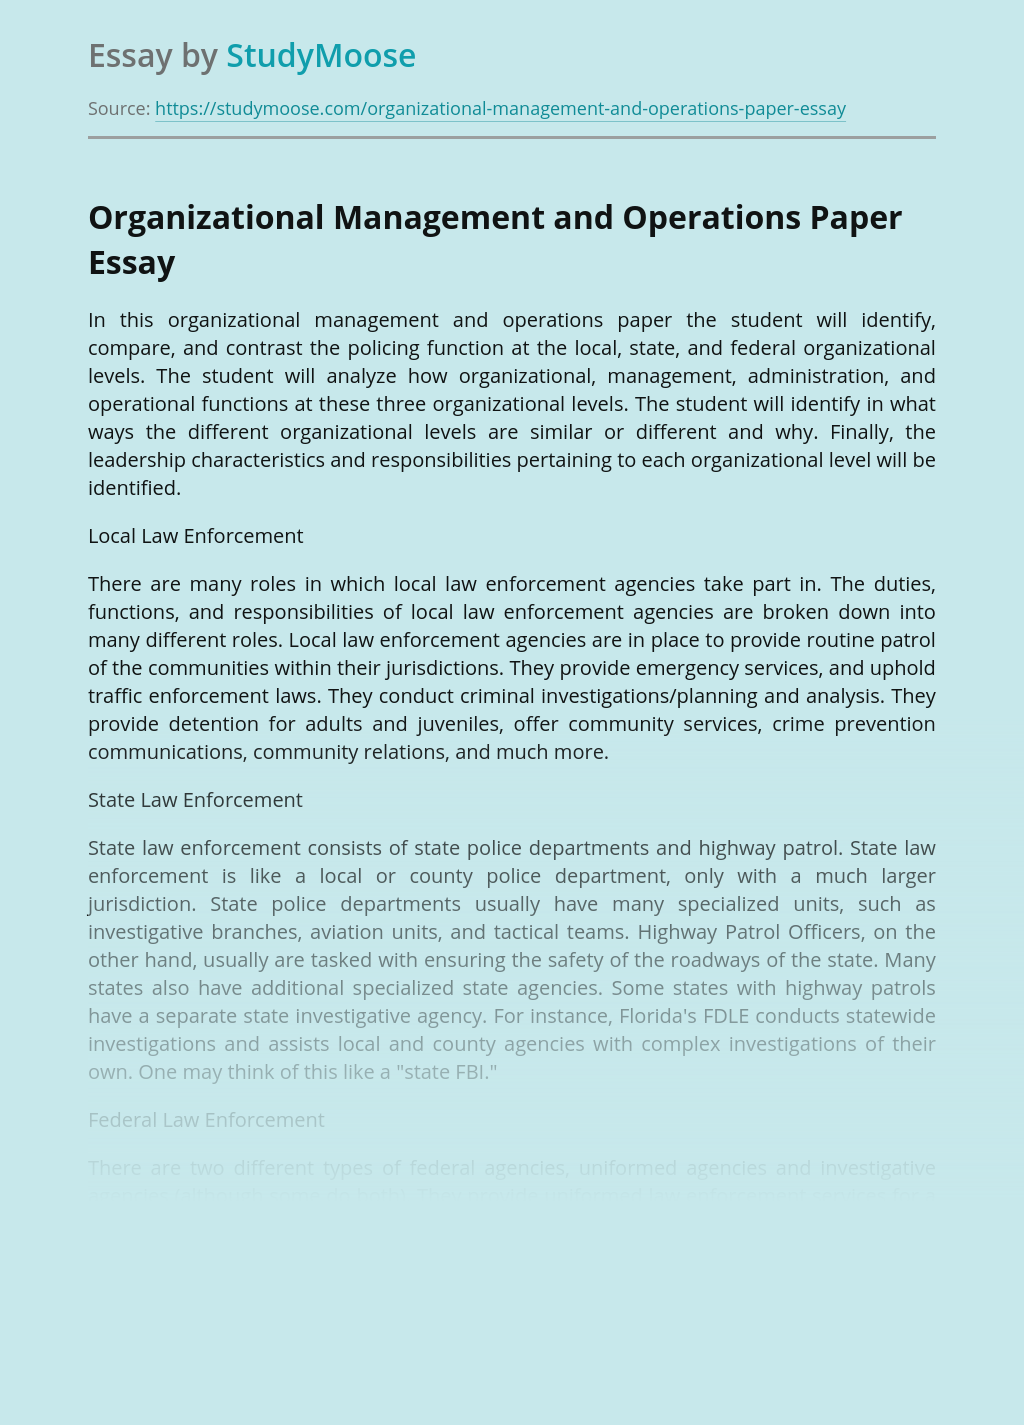 Organizational Management and Operations Paper